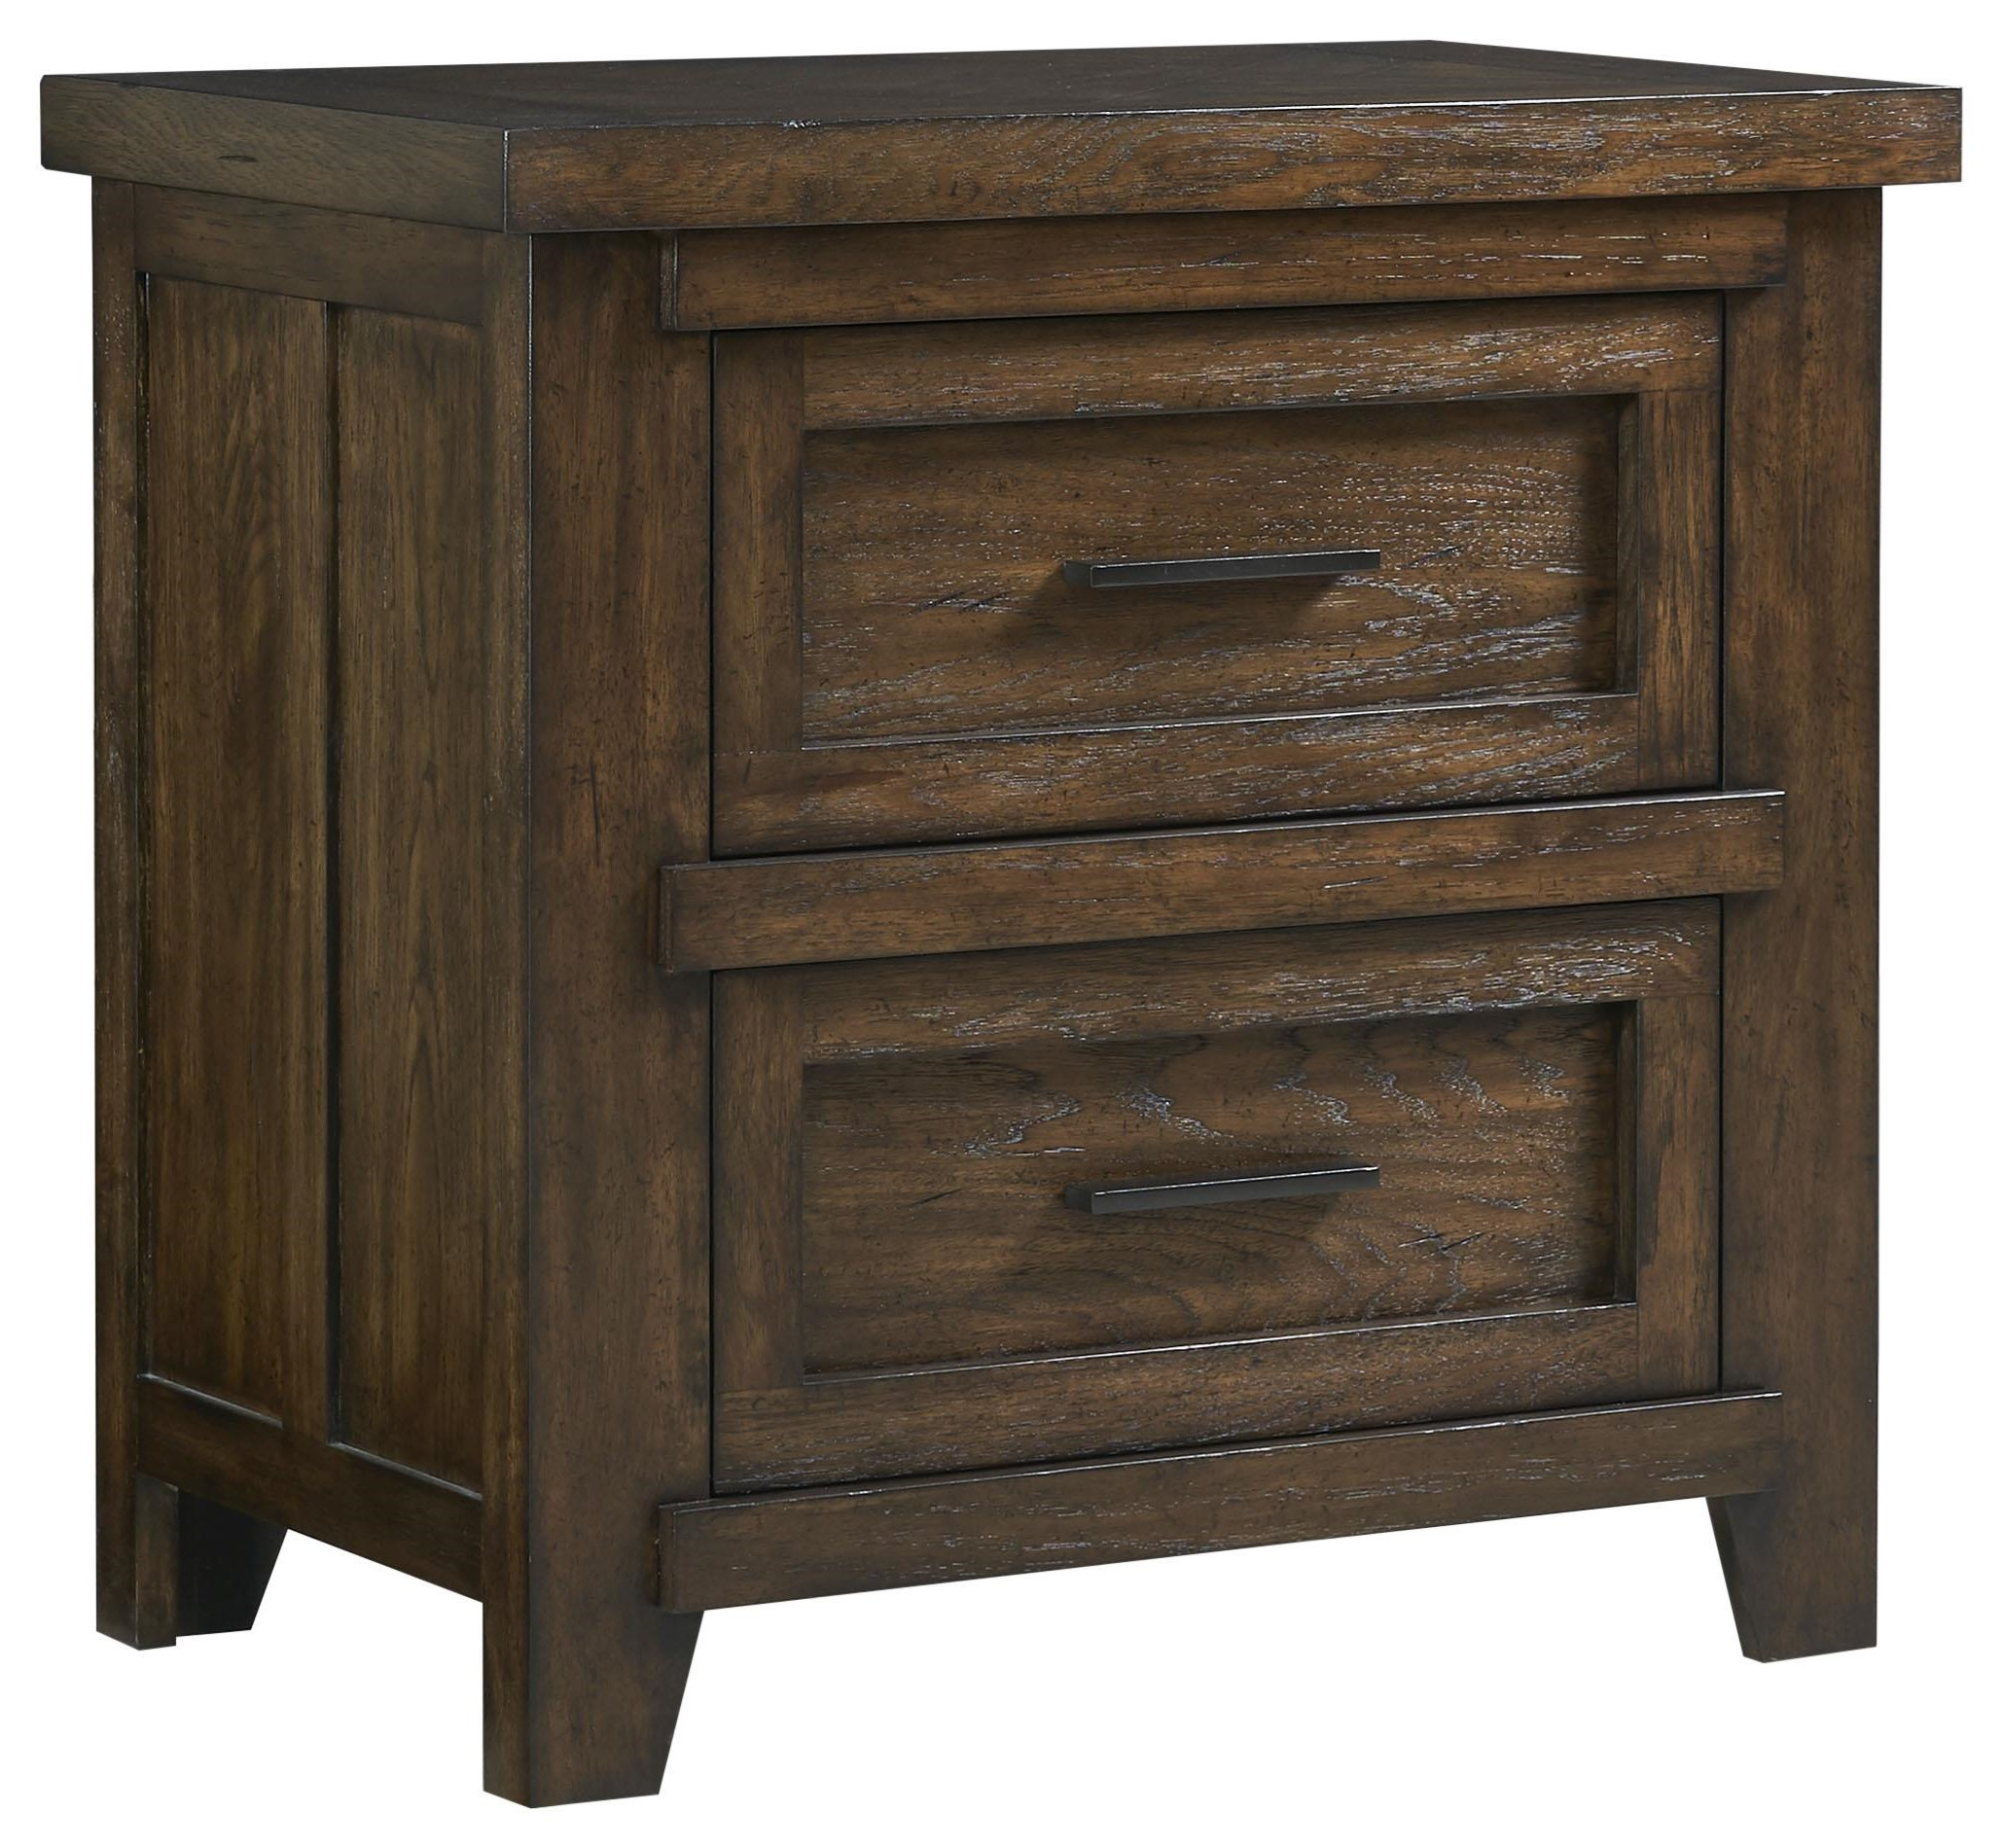 Tally's Corner Nightstand by FD Home at Darvin Furniture